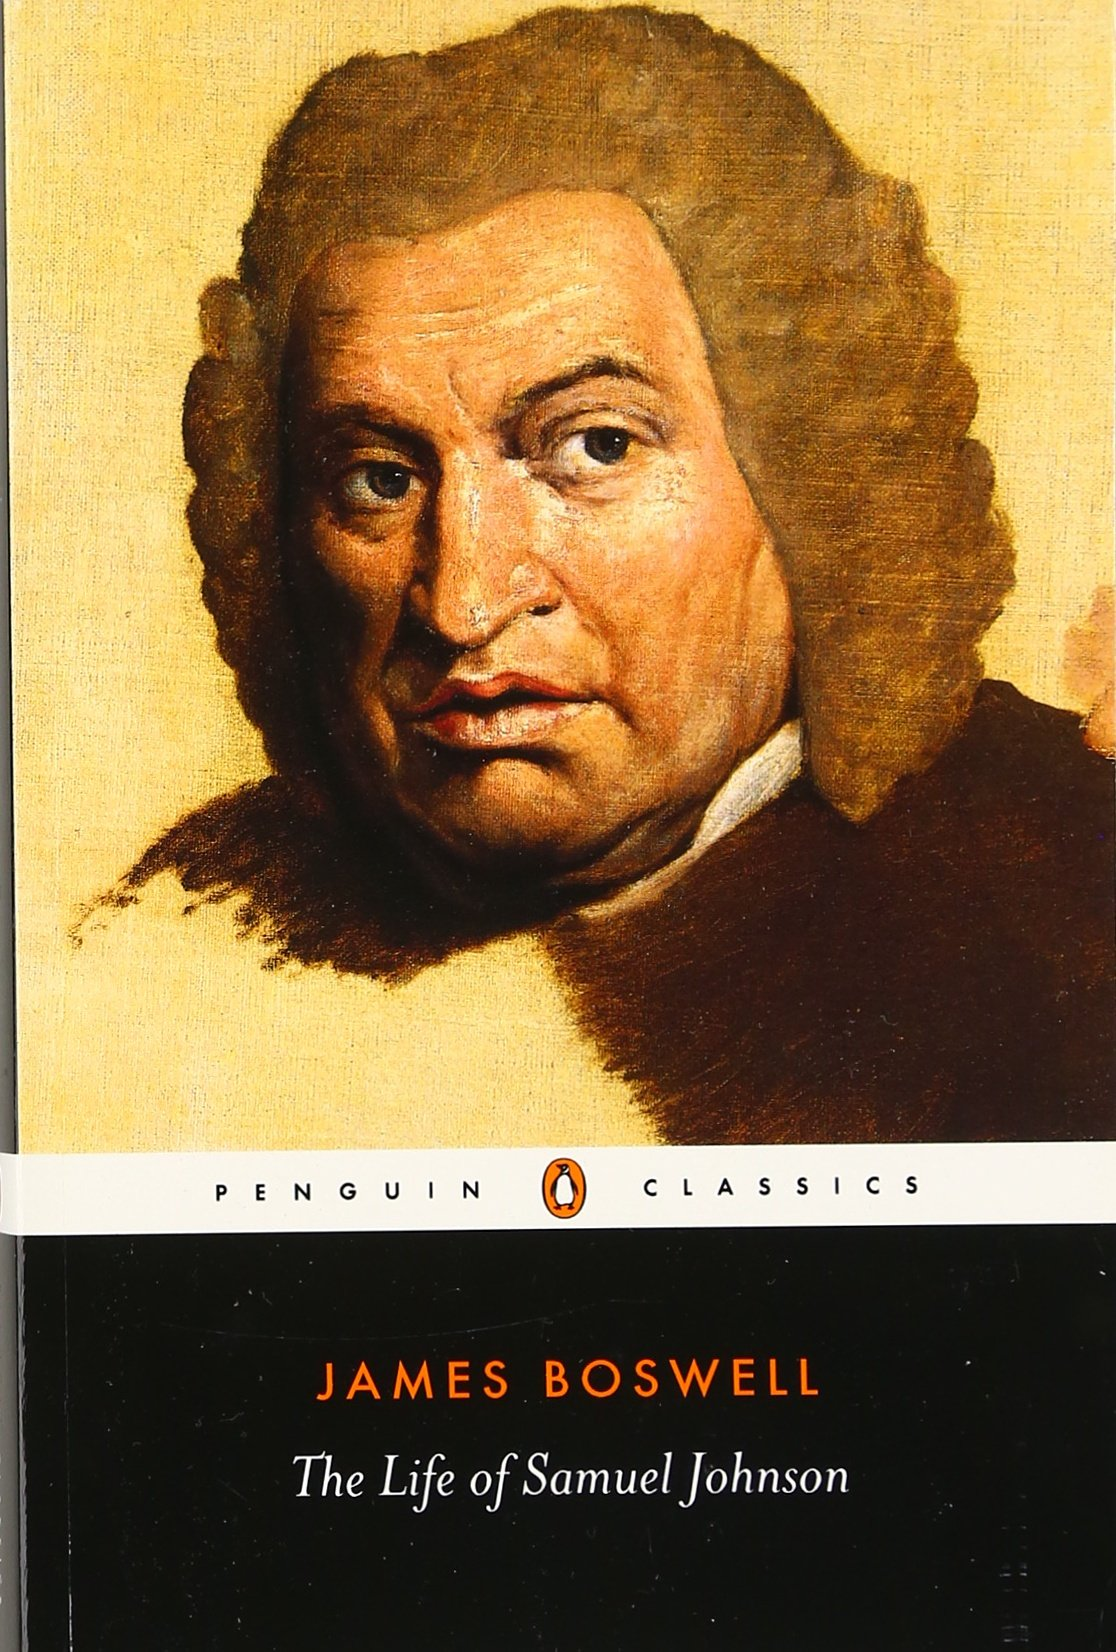 Download image 1700s woman portrait pc android iphone and ipad - Amazon Com The Life Of Samuel Johnson Penguin Classics 9780140431162 James Boswell Christopher Hibbert Books